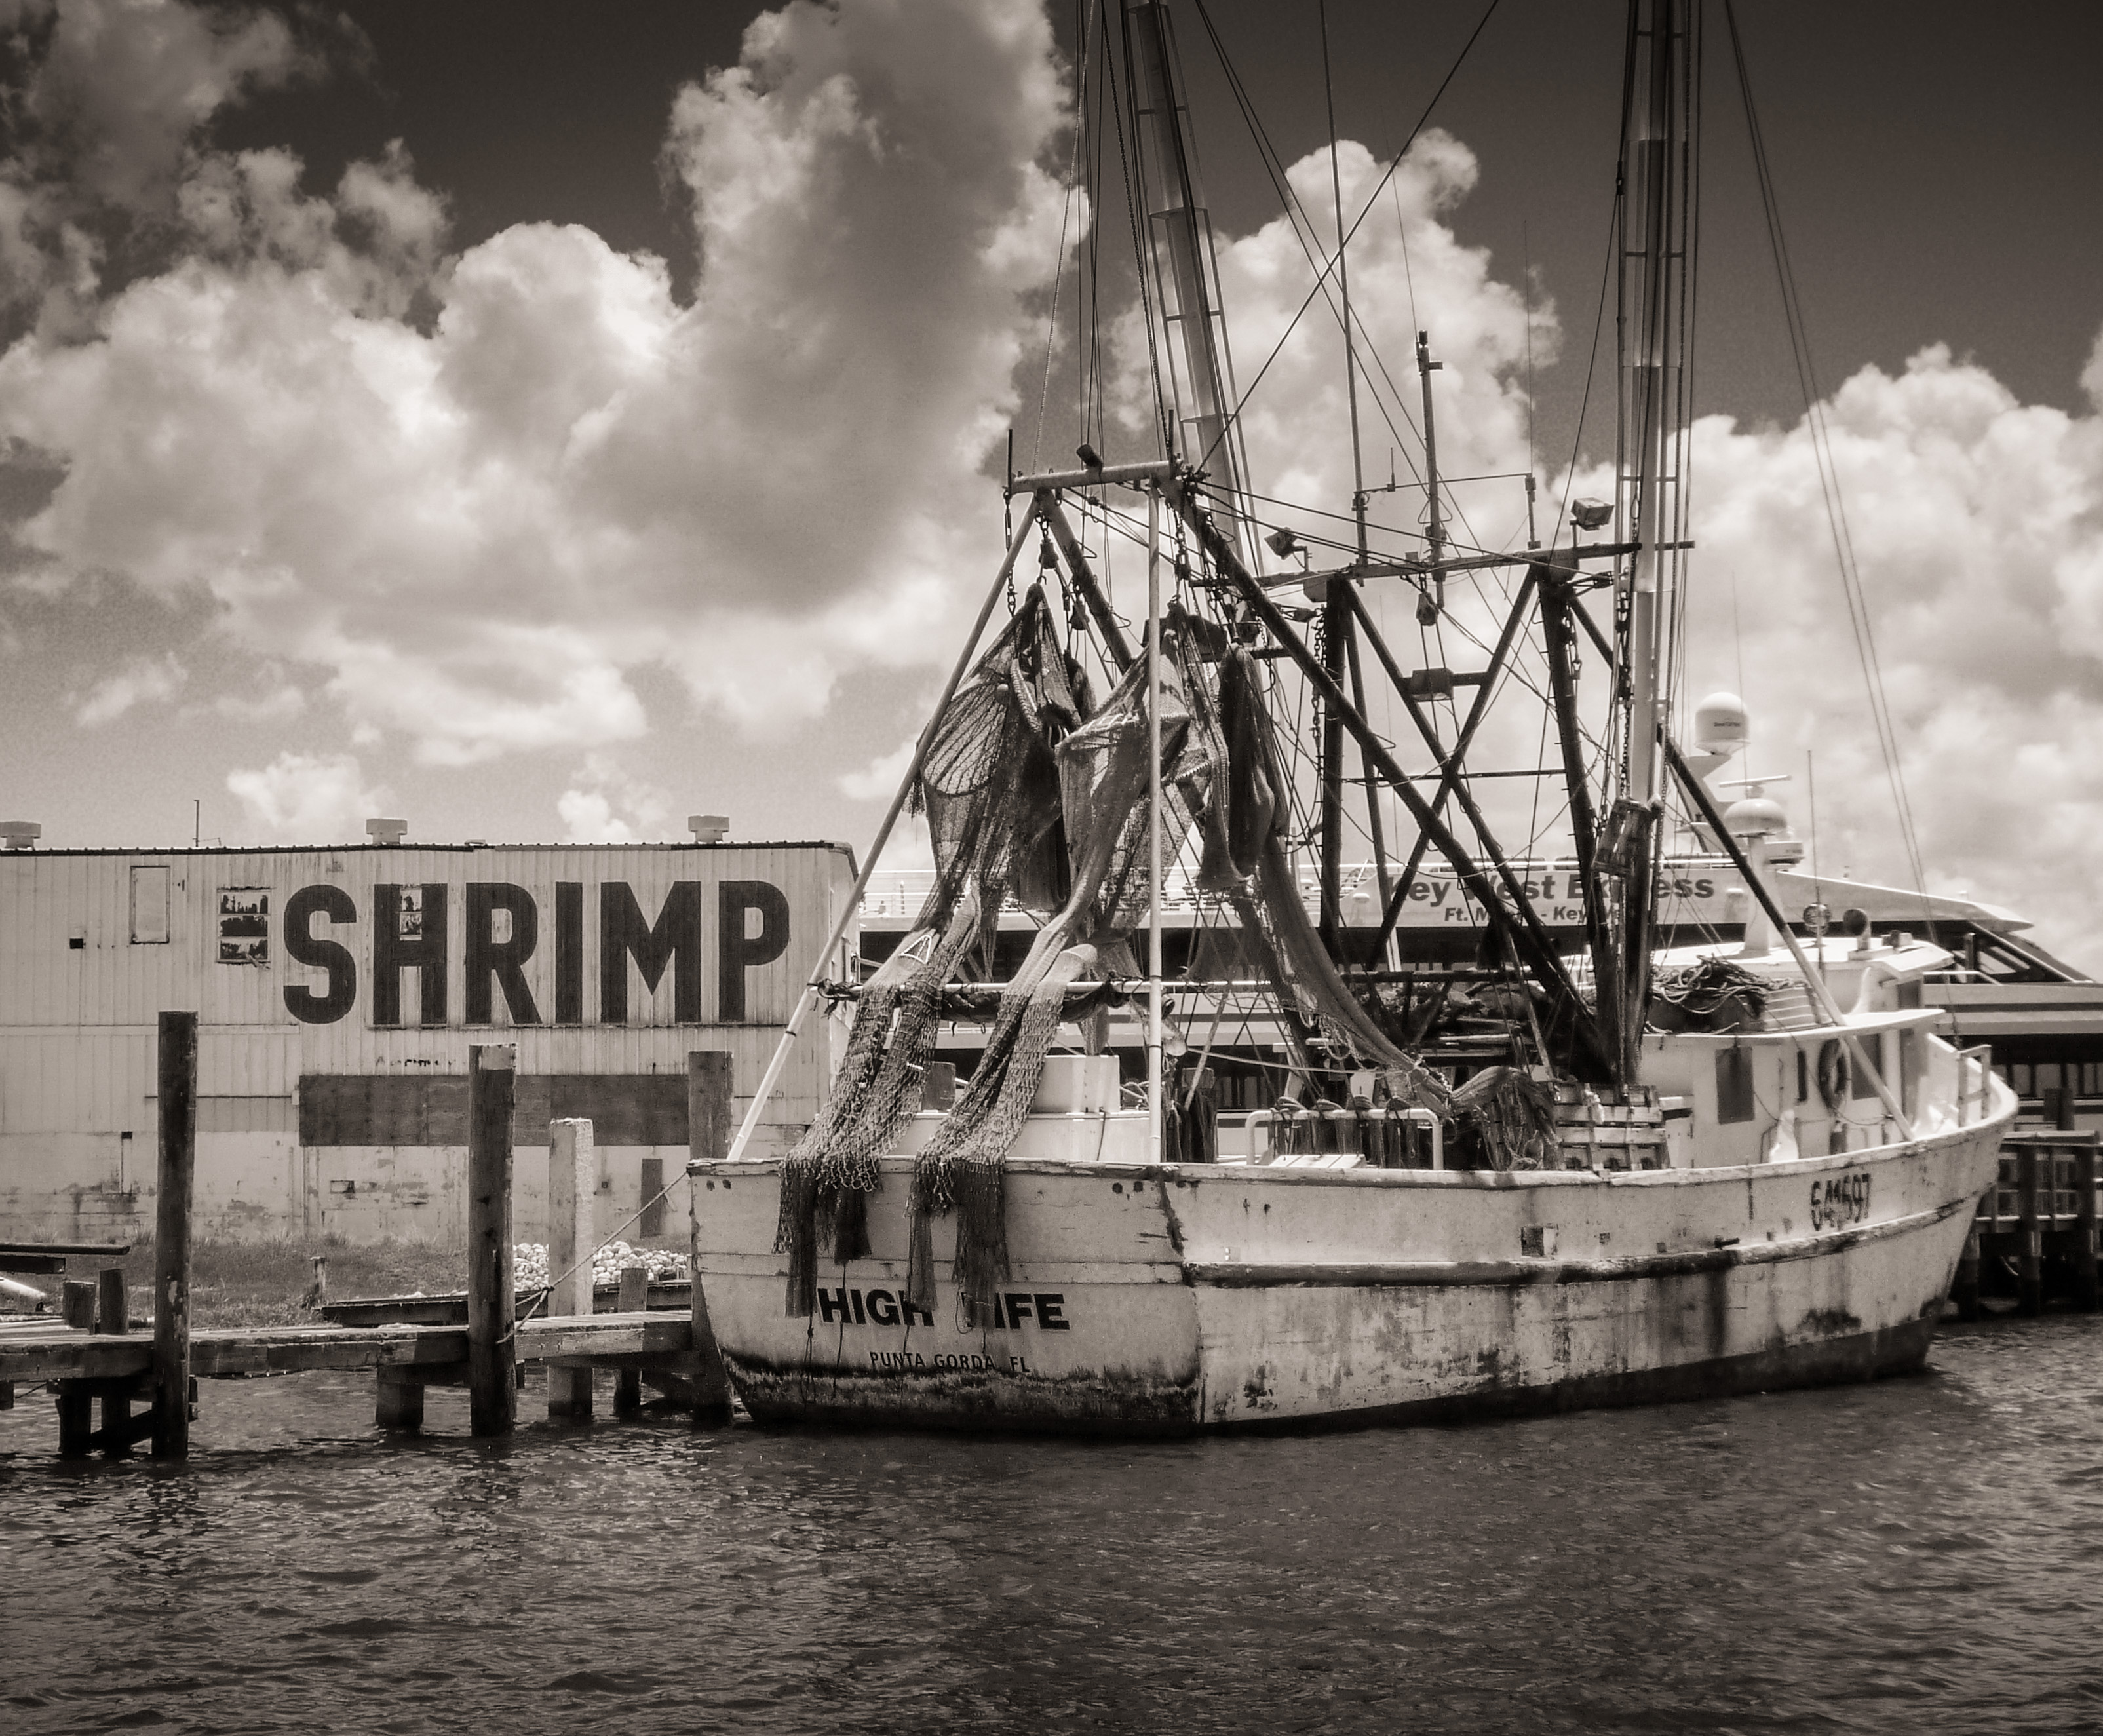 """High Life"" Shrimp Boat at Dock"